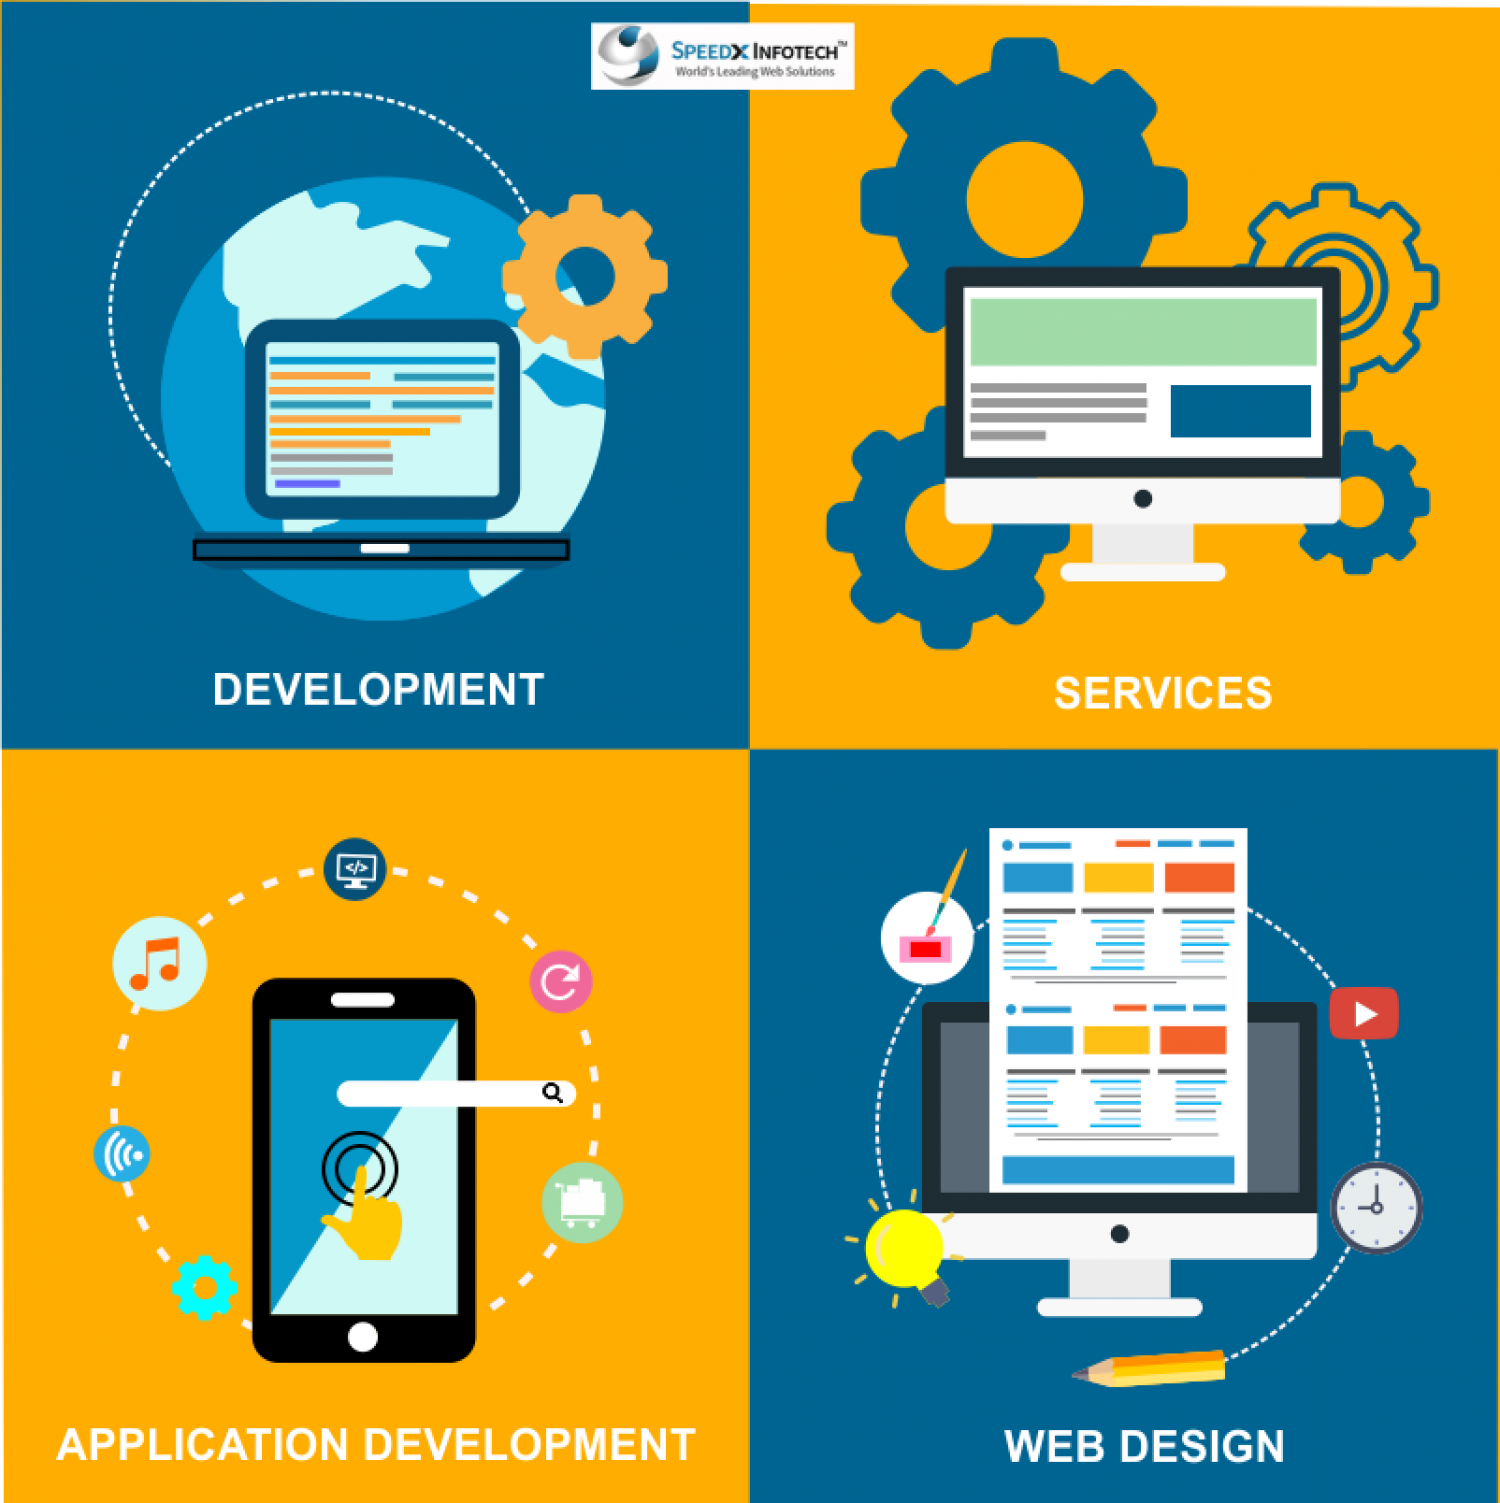 Customized Web Design and Development Solutions Infographic